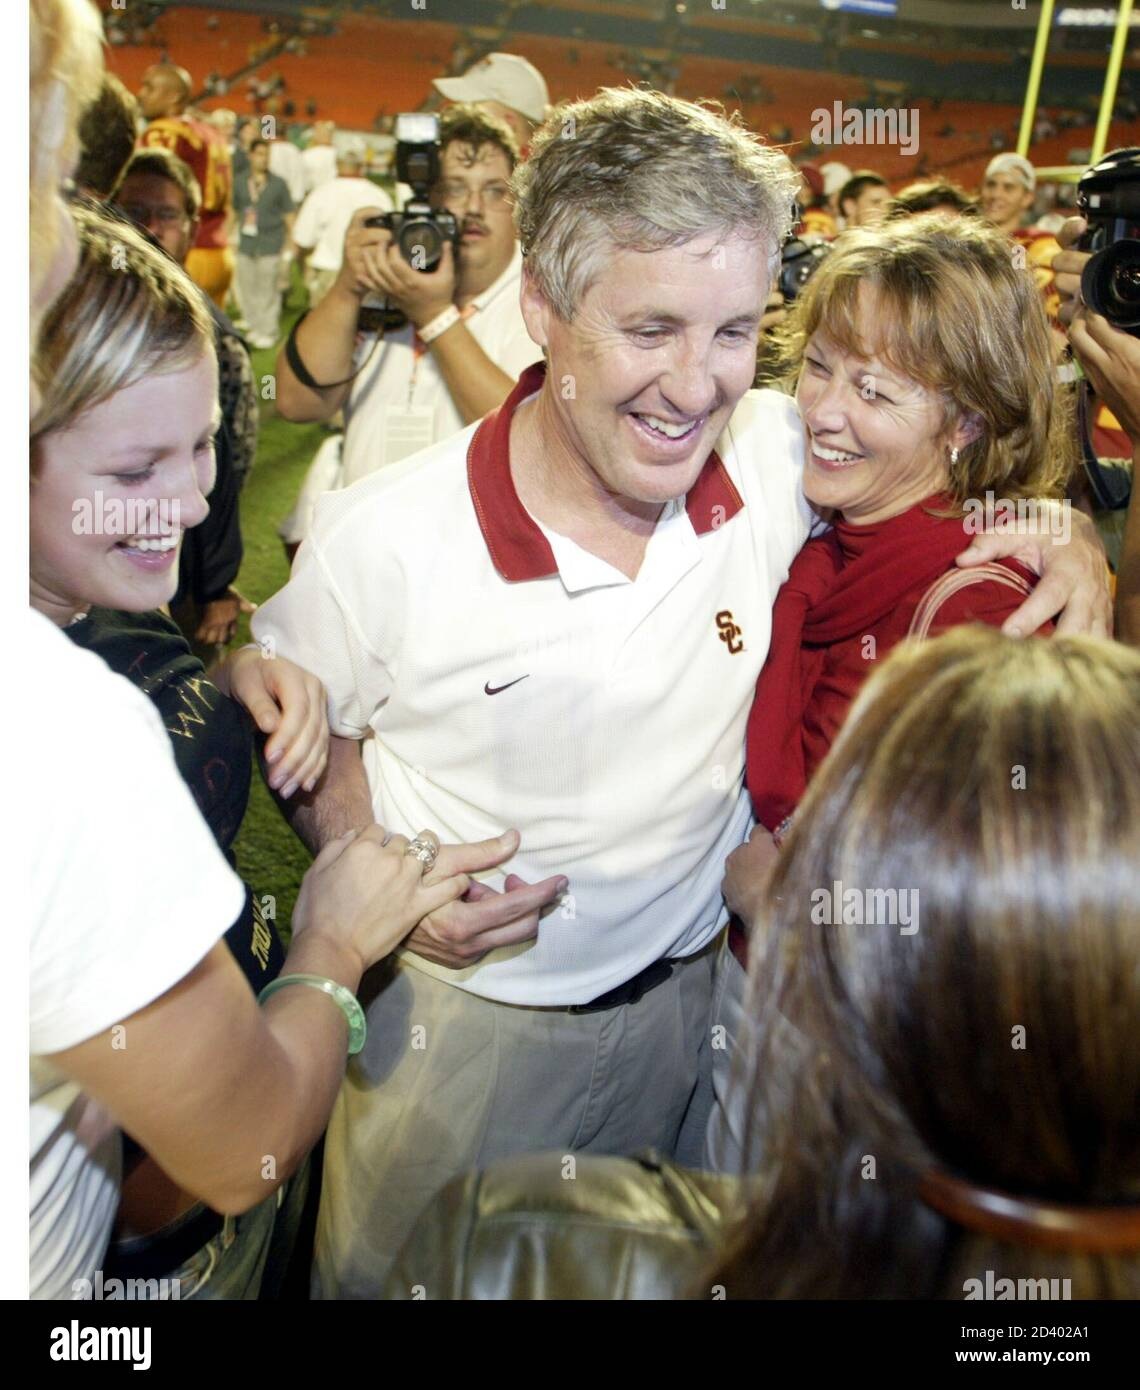 University Of Southern California Trojans Coach Pete Carroll Hugs His Wife Glenna R After Winning The Orange Bowl At Pro Player Stadium In Miami Florida On January 2 2003 Usc Defeated Iowa